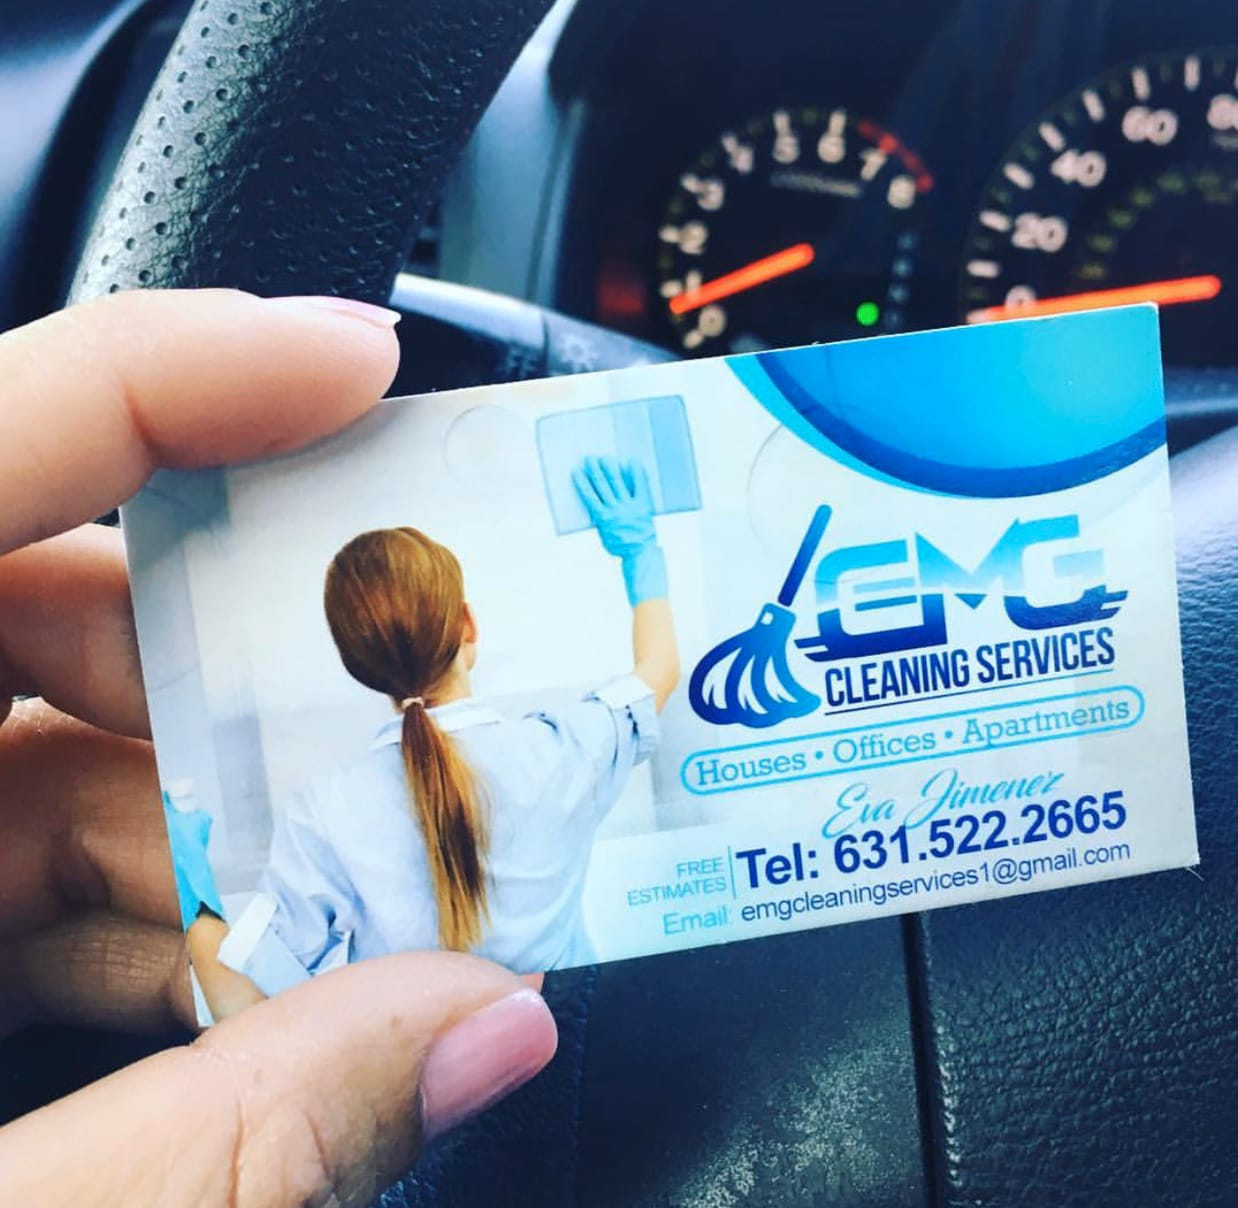 EMG cleaning services